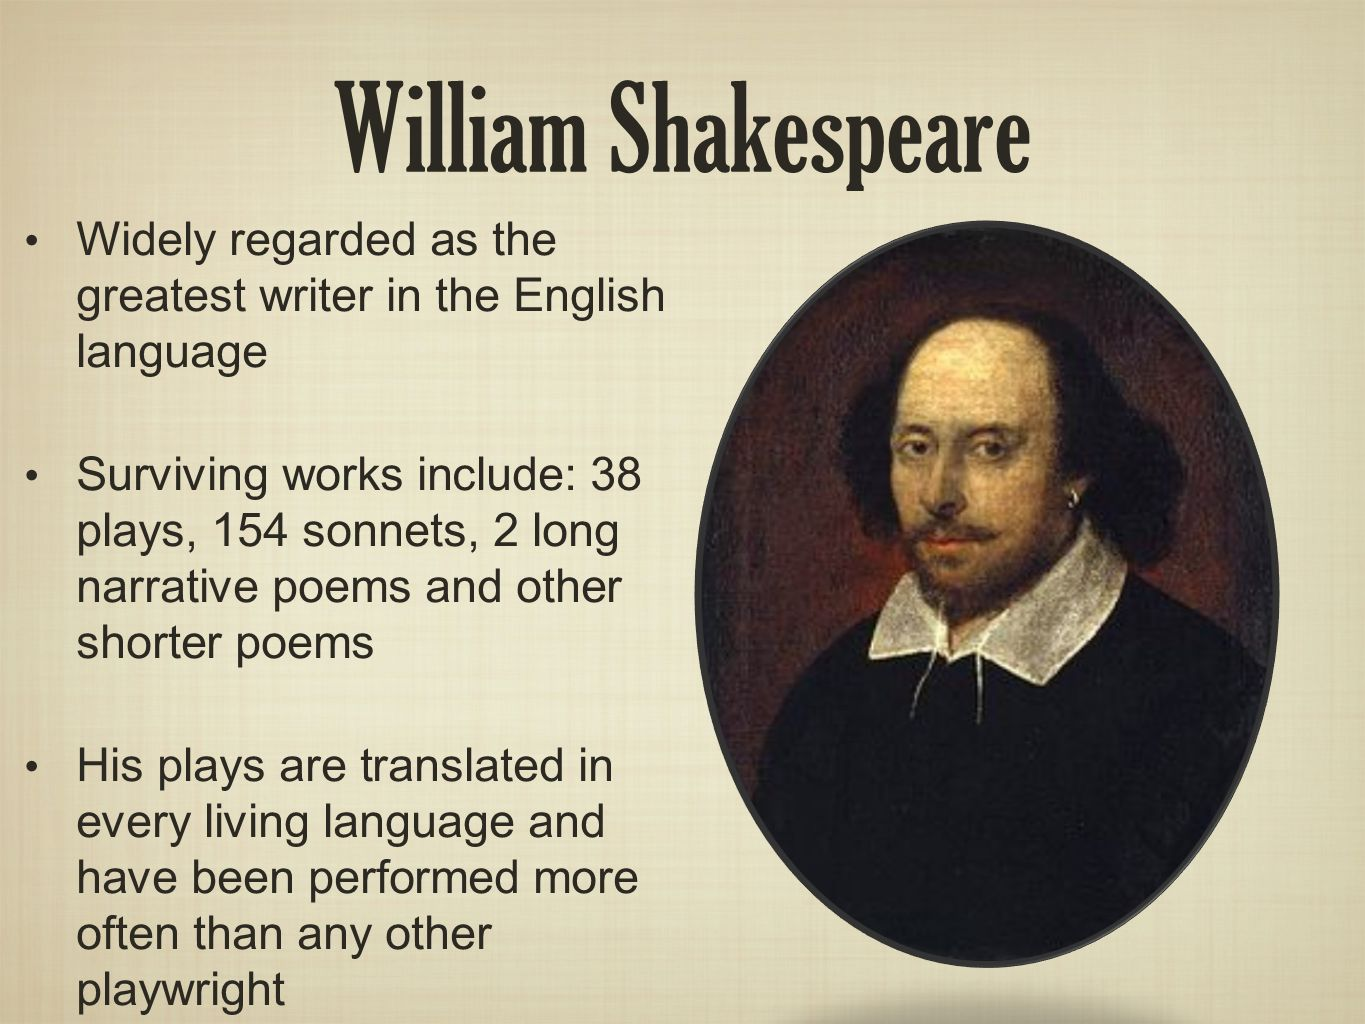 William shakespeare the greatest writer 2 essay